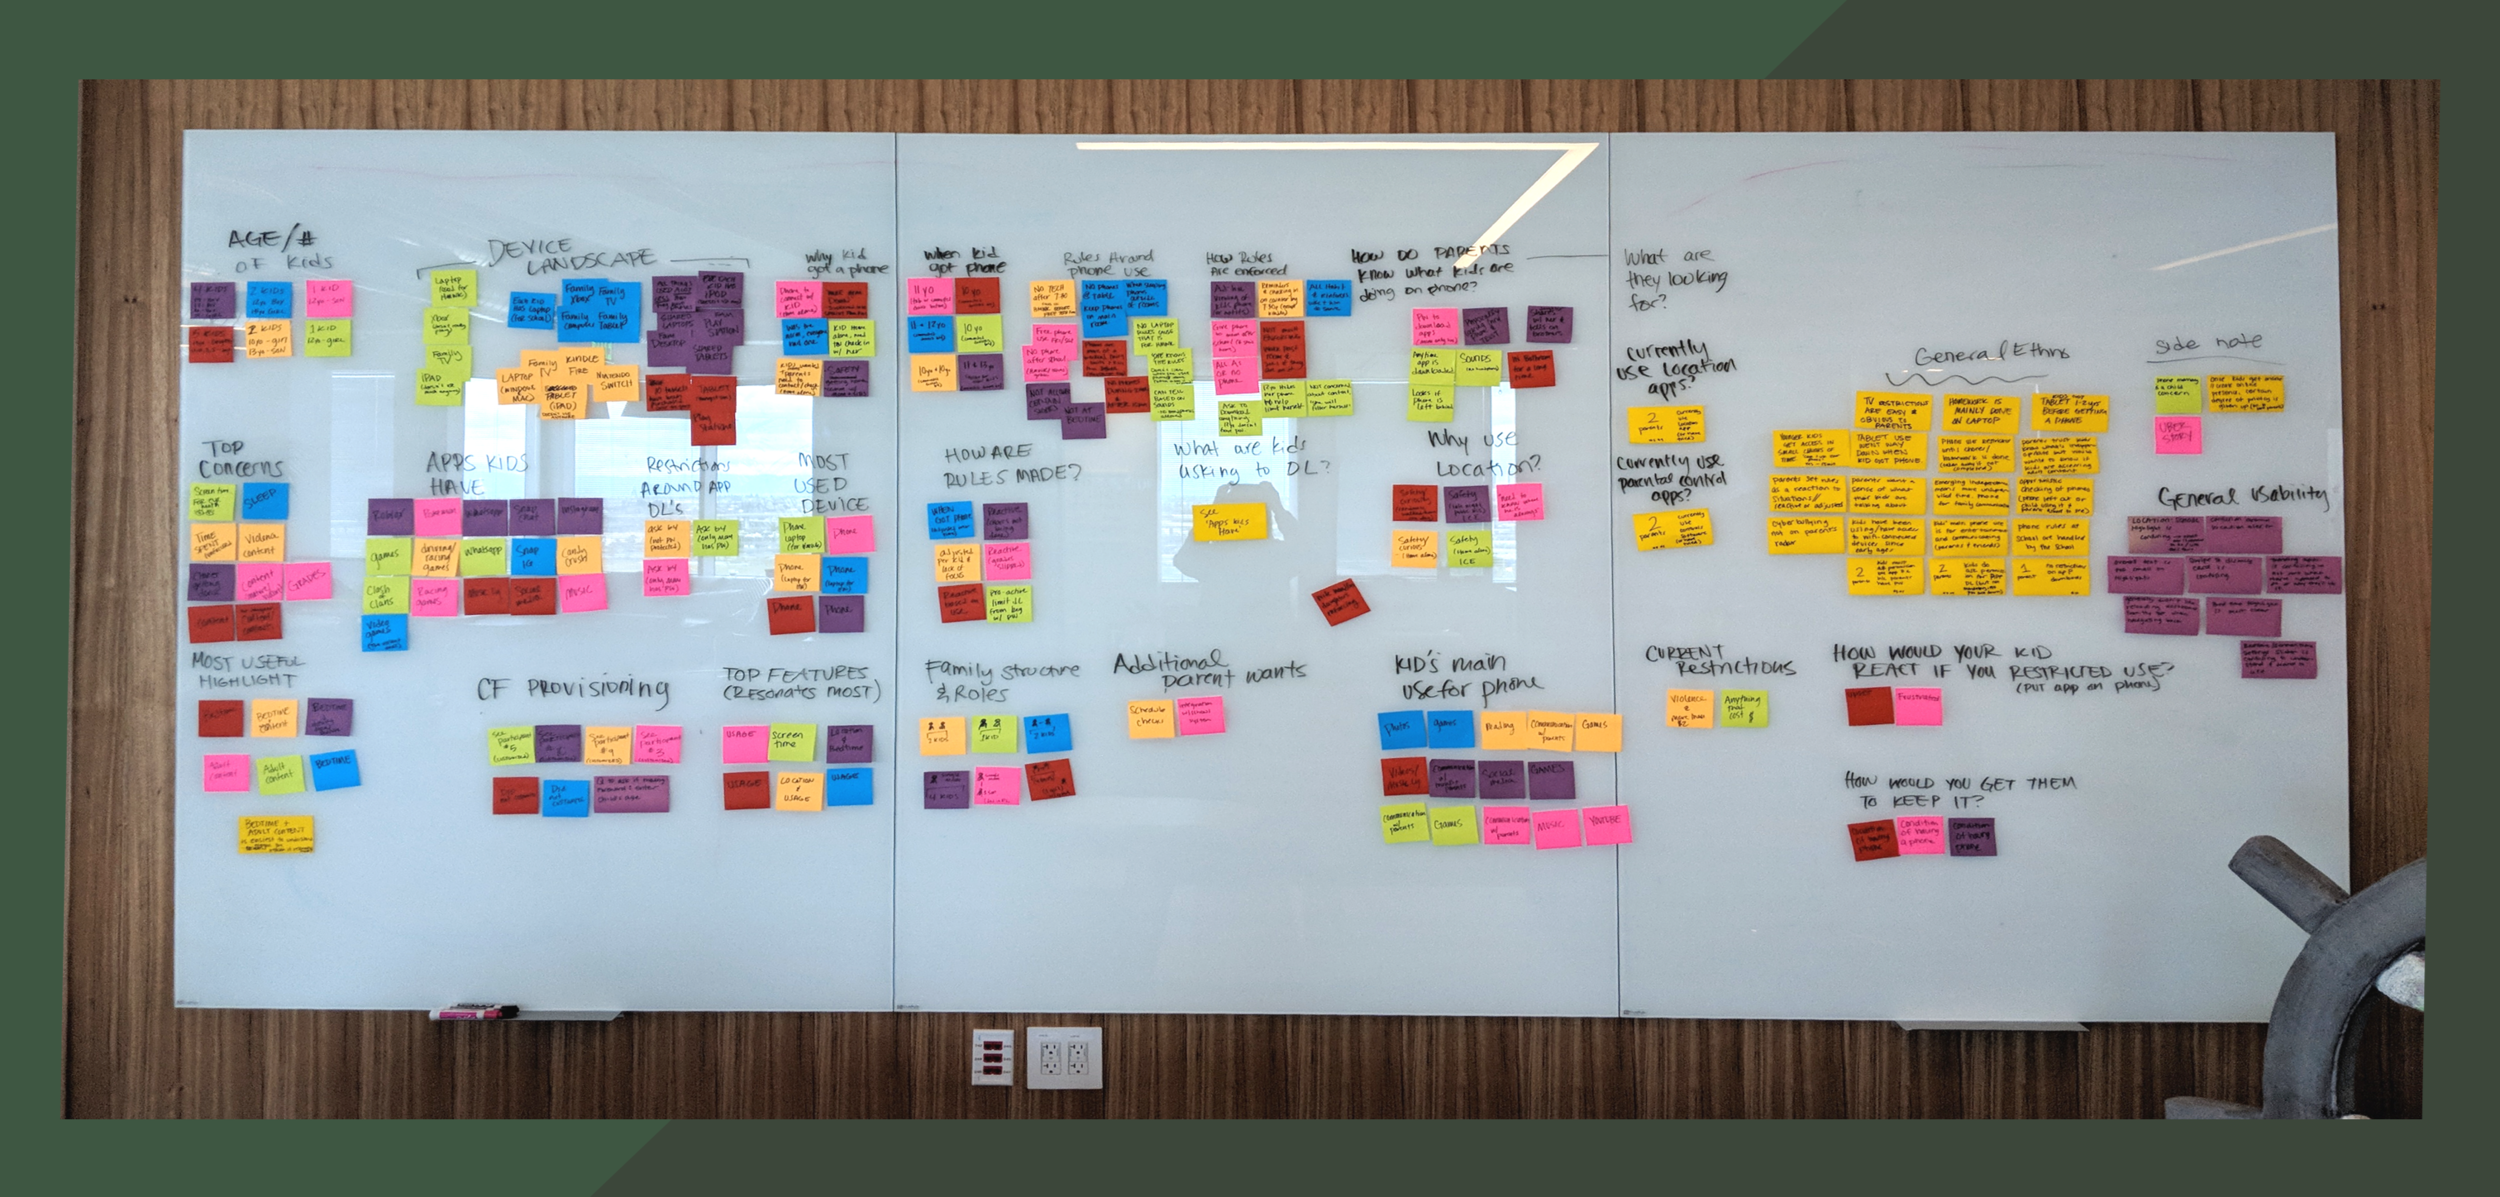 Research synthesis after a slew of user interviews